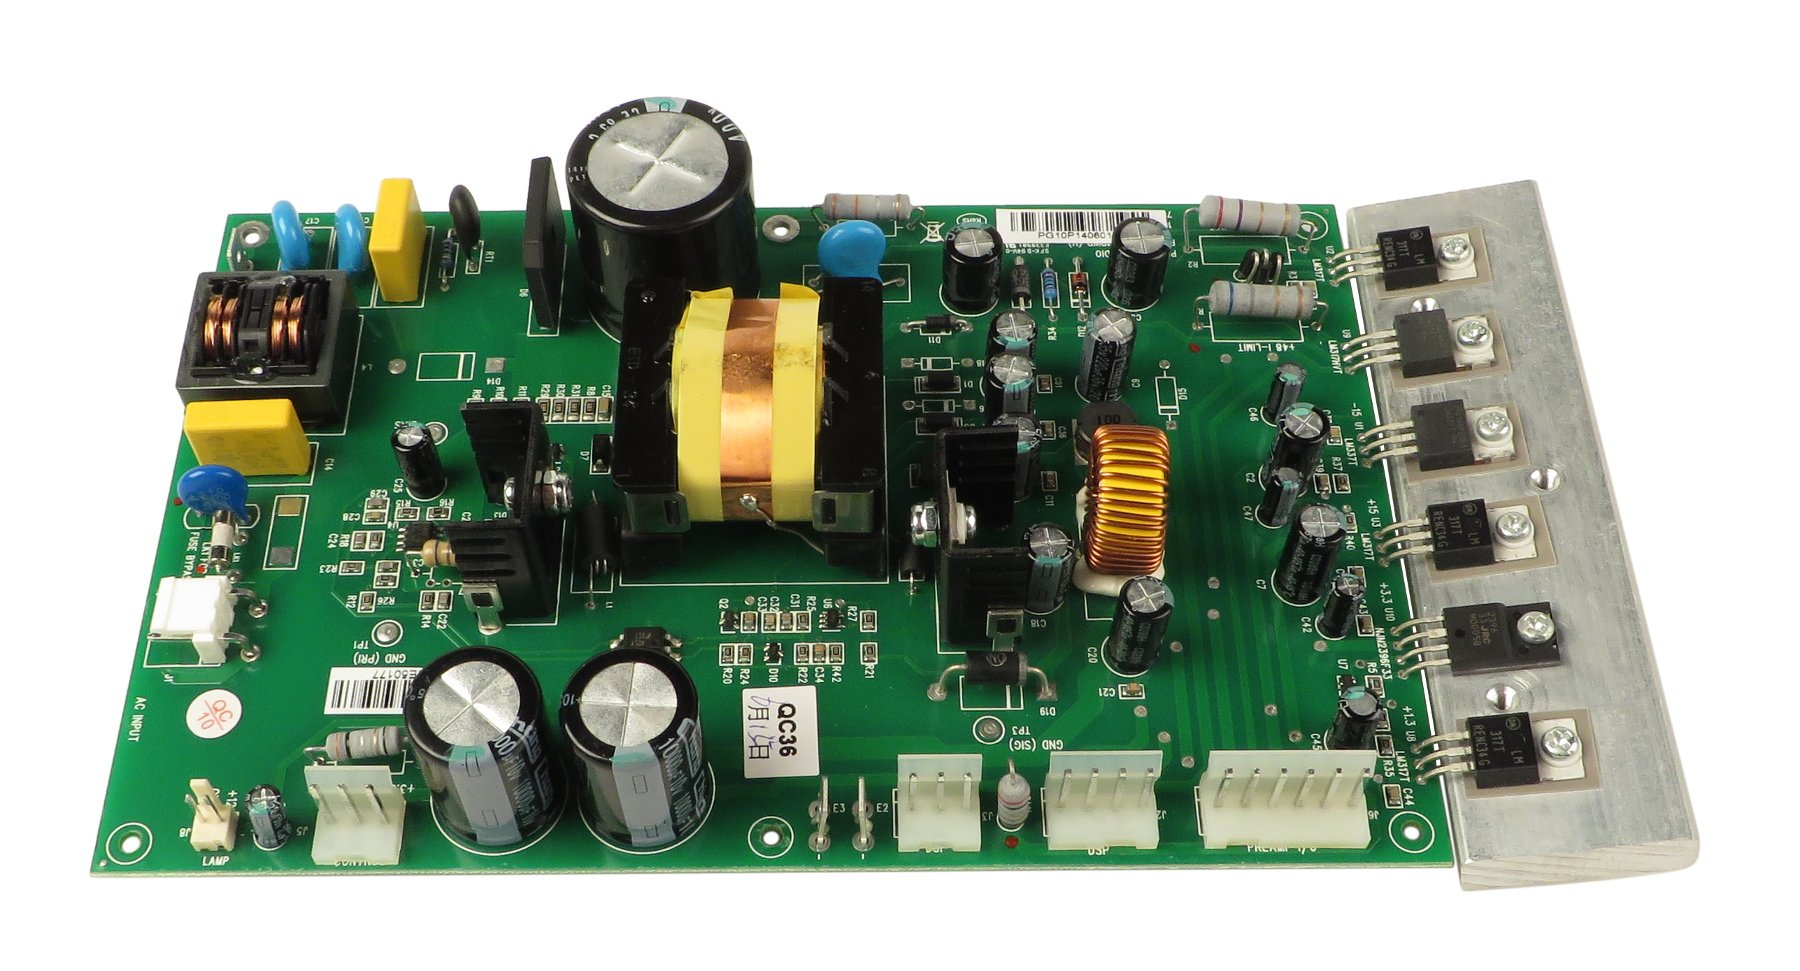 Power Supply PCB Assembly for StudioLive 16.4.2